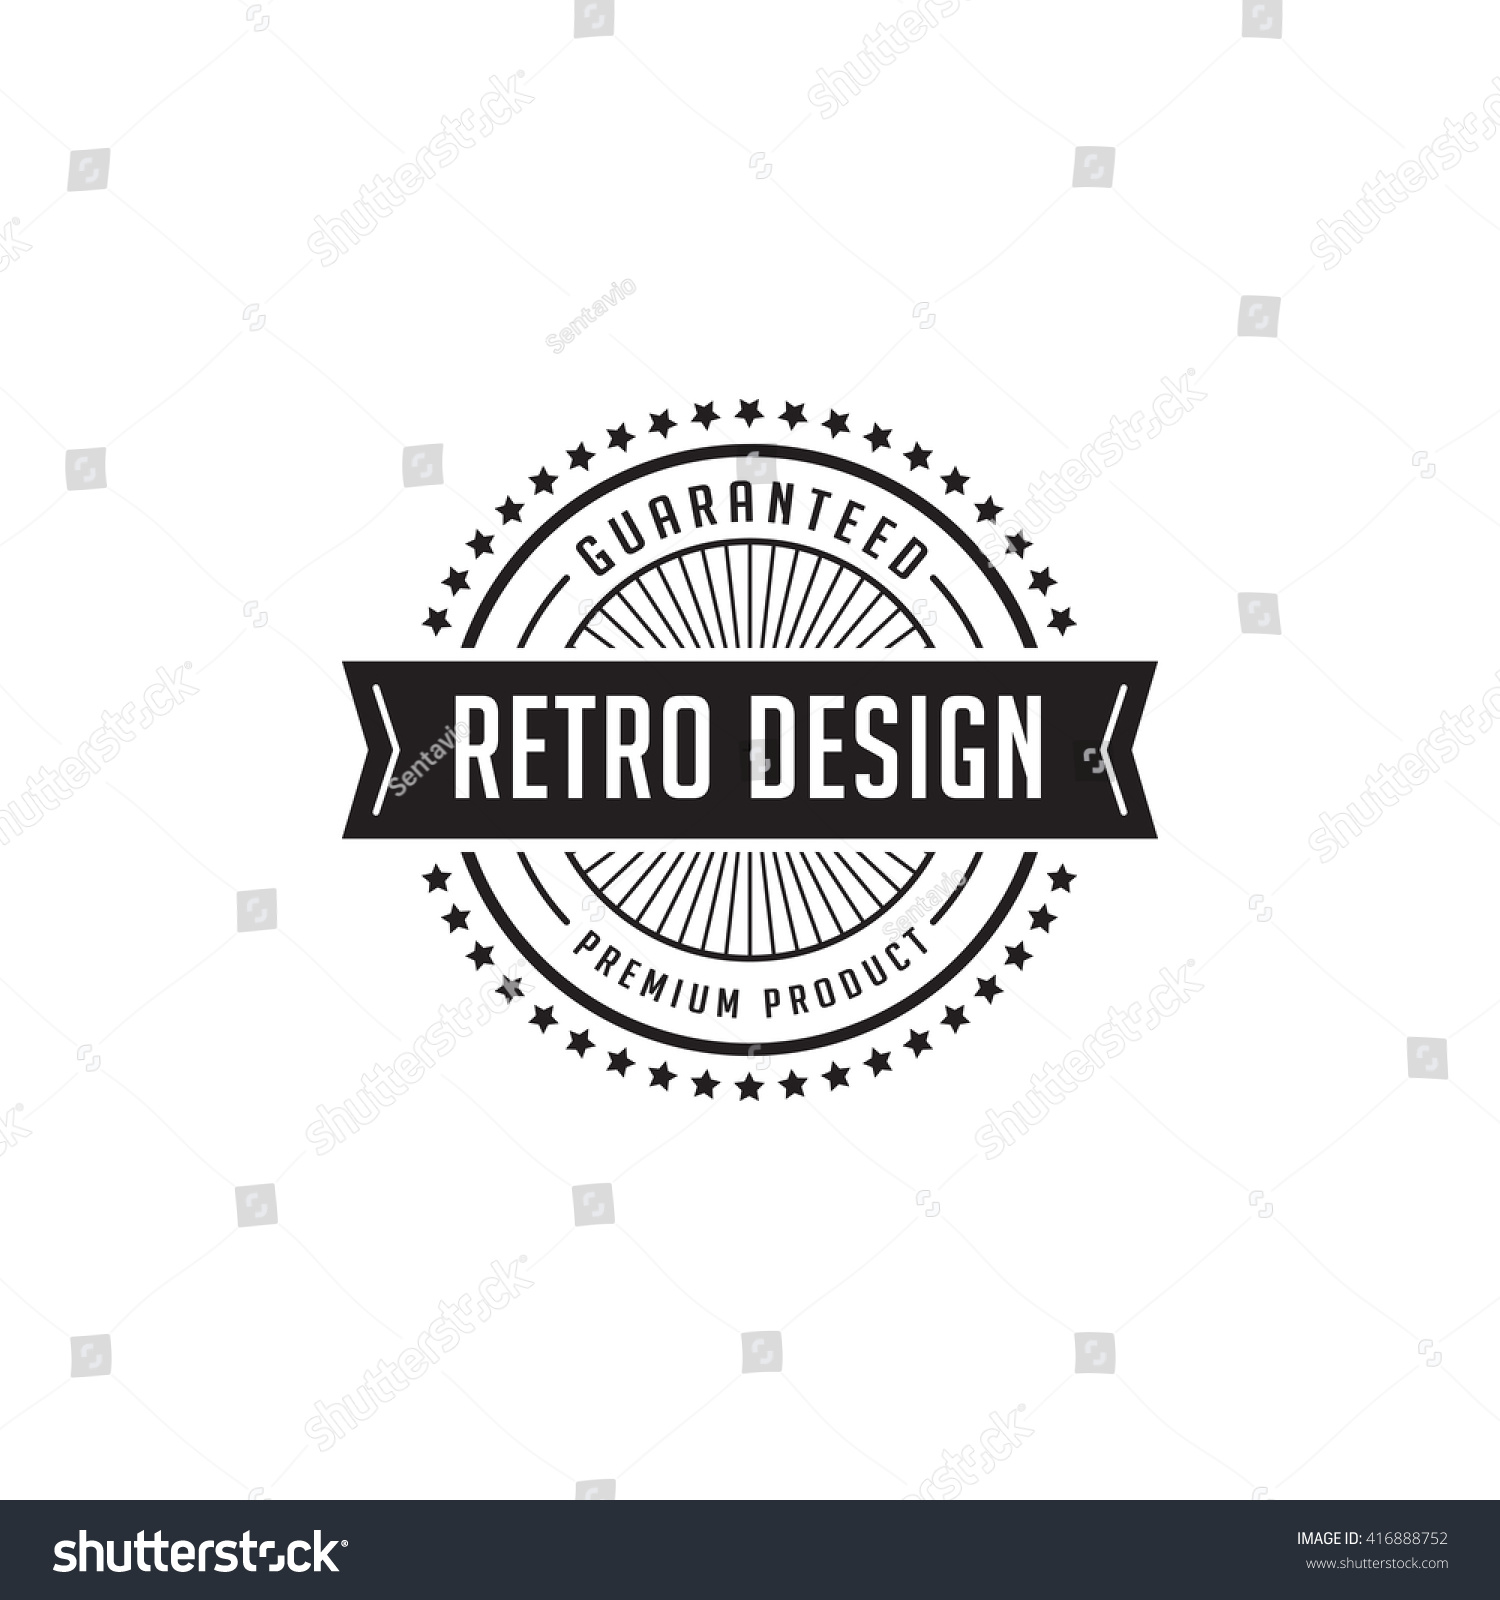 vintage label badge logo design vector stock vector 416888752 shutterstock. Black Bedroom Furniture Sets. Home Design Ideas